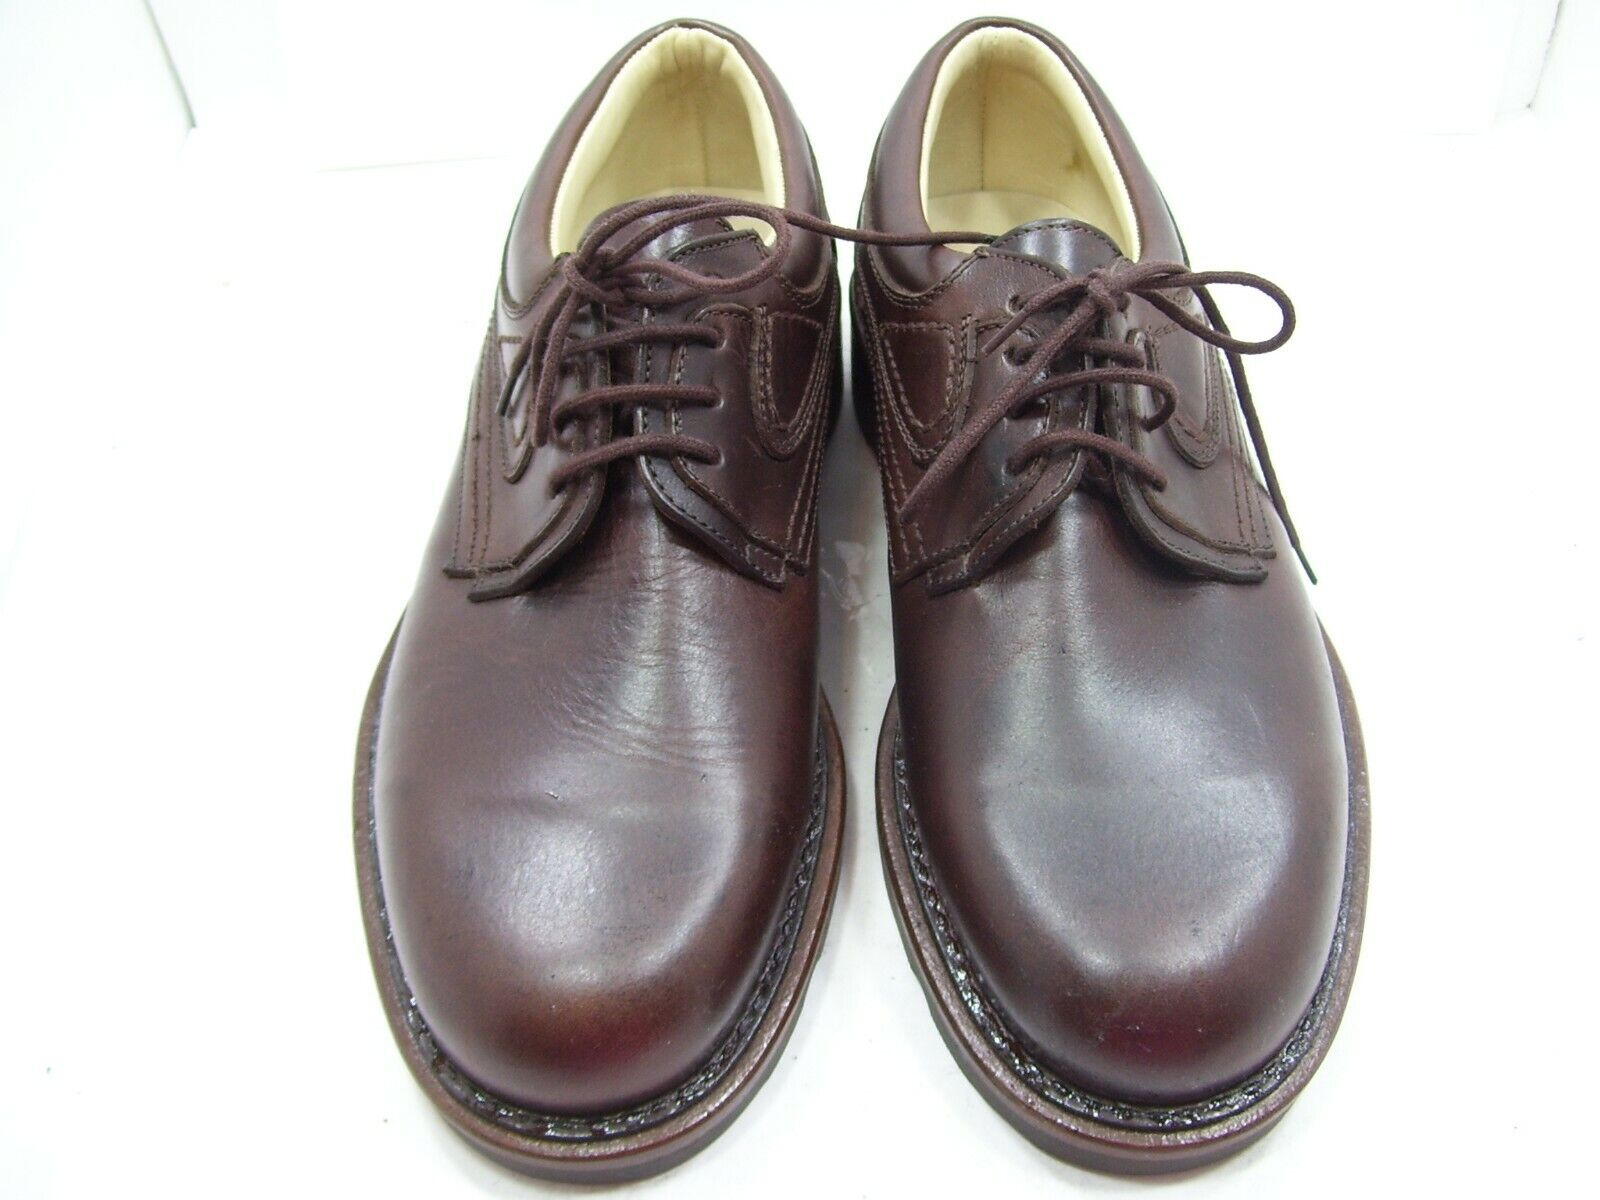 BATSANIS MENS DRESS FORMAL WORK CORPORATE LEATHER marron chaussures MADE IN AUS Taille 7